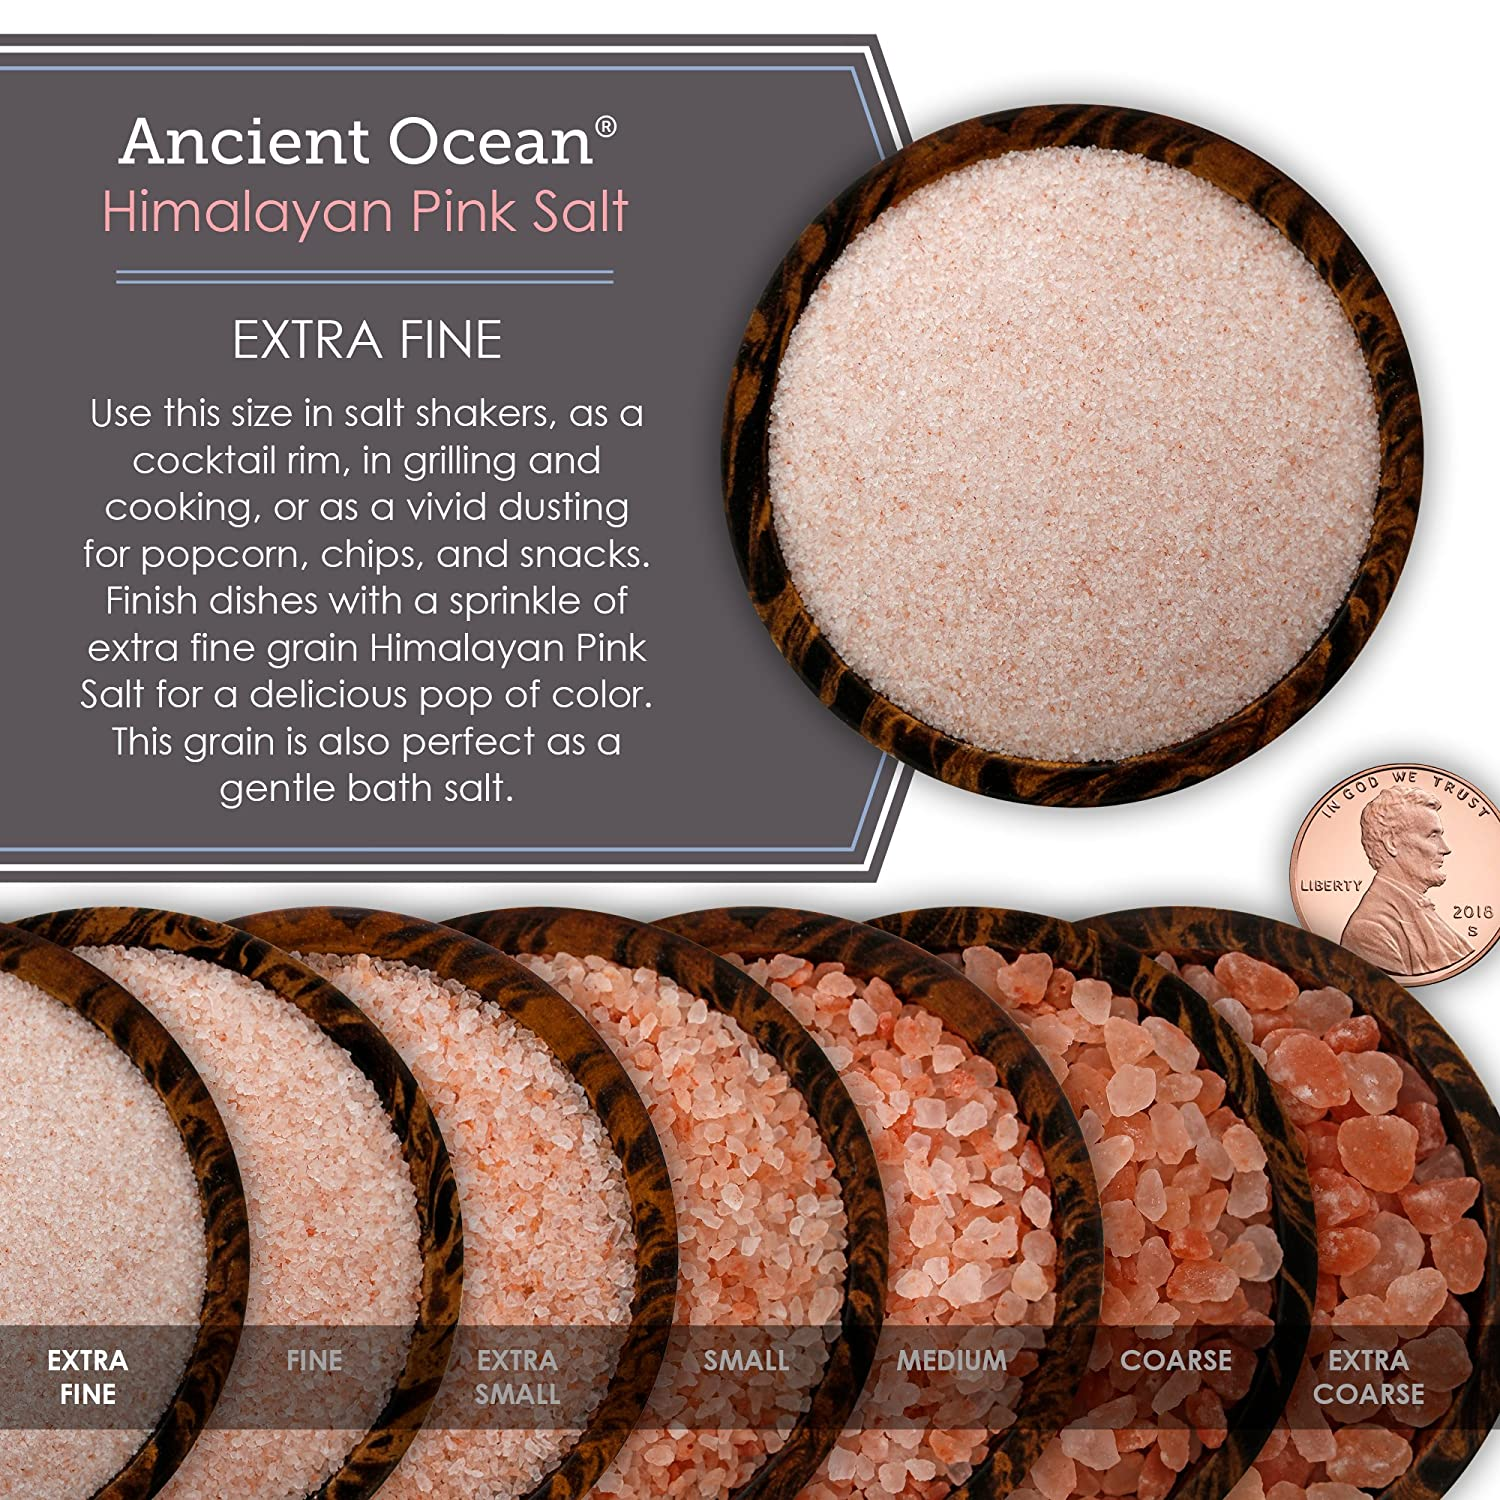 Ancient Ocean Himalayan Pink Salt, Extra Fine Grain, 5 Pound Bulk Bag